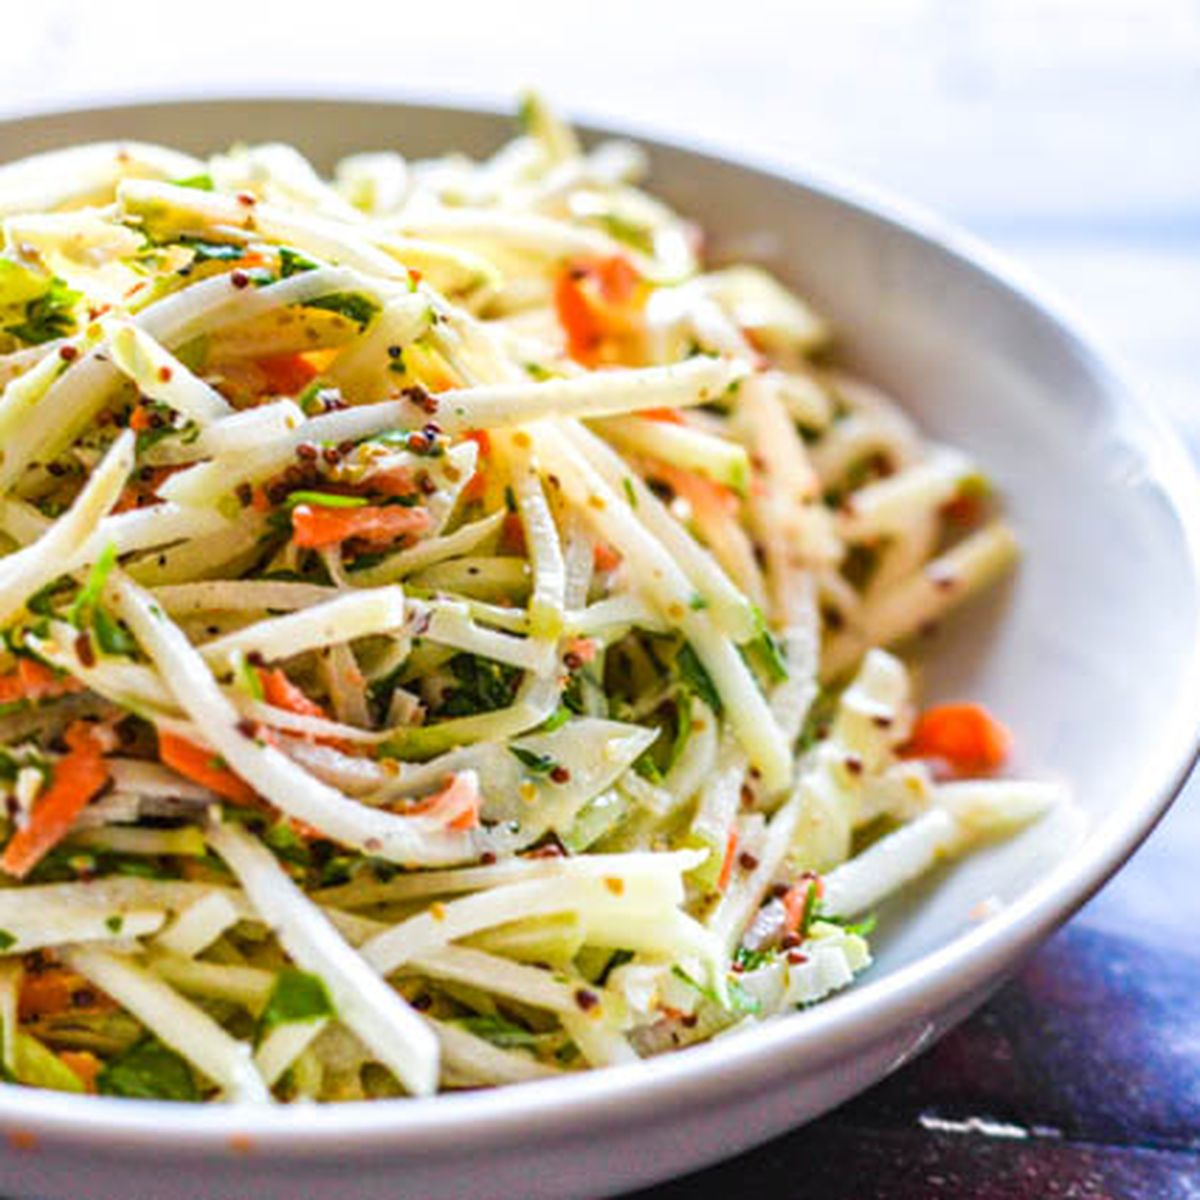 Kohlrabi Slaw Recipe On Food52